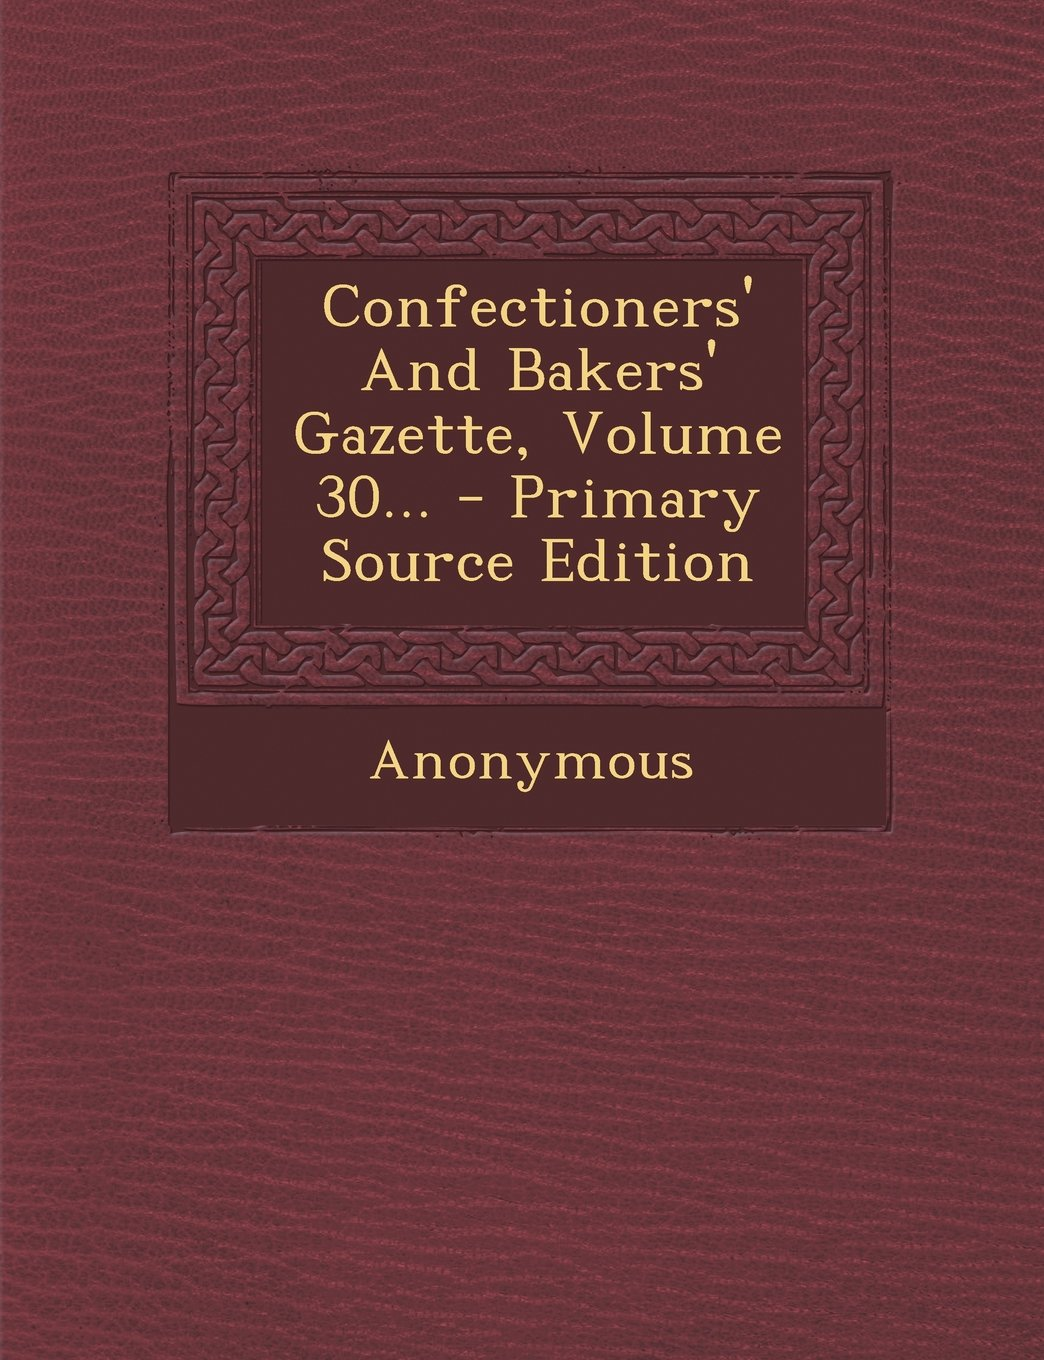 Download Confectioners' And Bakers' Gazette, Volume 30... - Primary Source Edition pdf epub